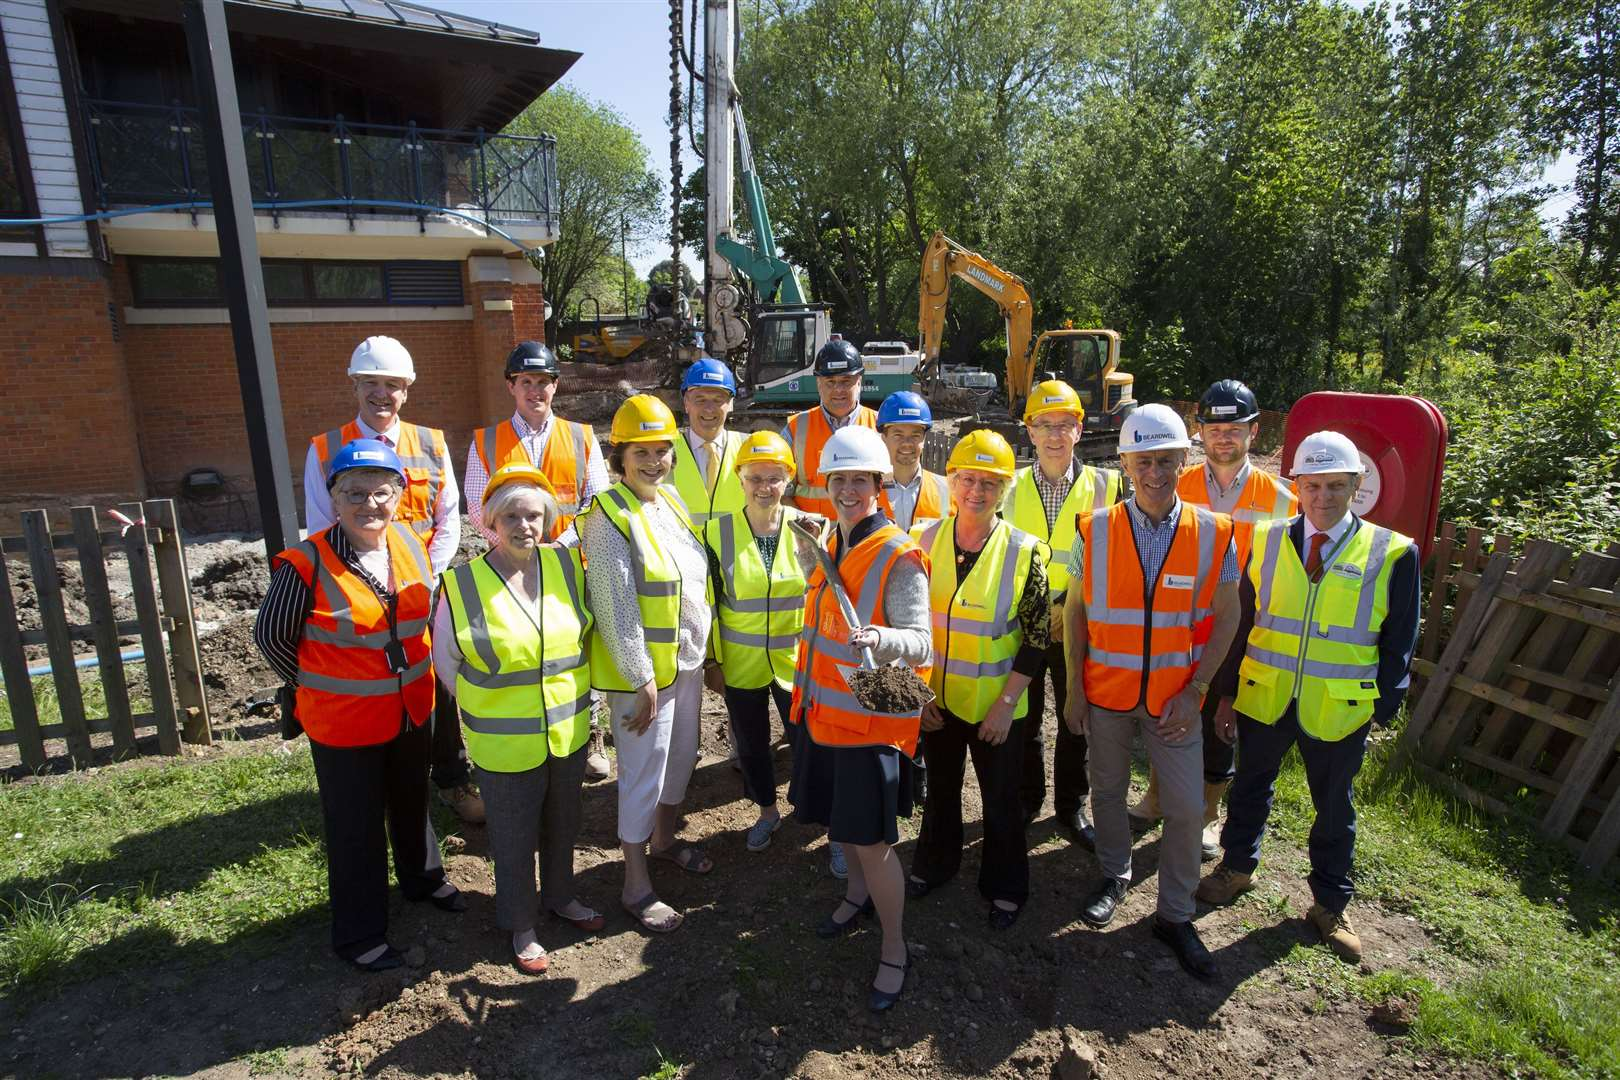 Ground-breaking ceremony to mark the start of work on the £2.35m extension and refurbishment of Kingfisher Leisure Centre in Sudbury. Photo credit: Phil Morley. (11794743)